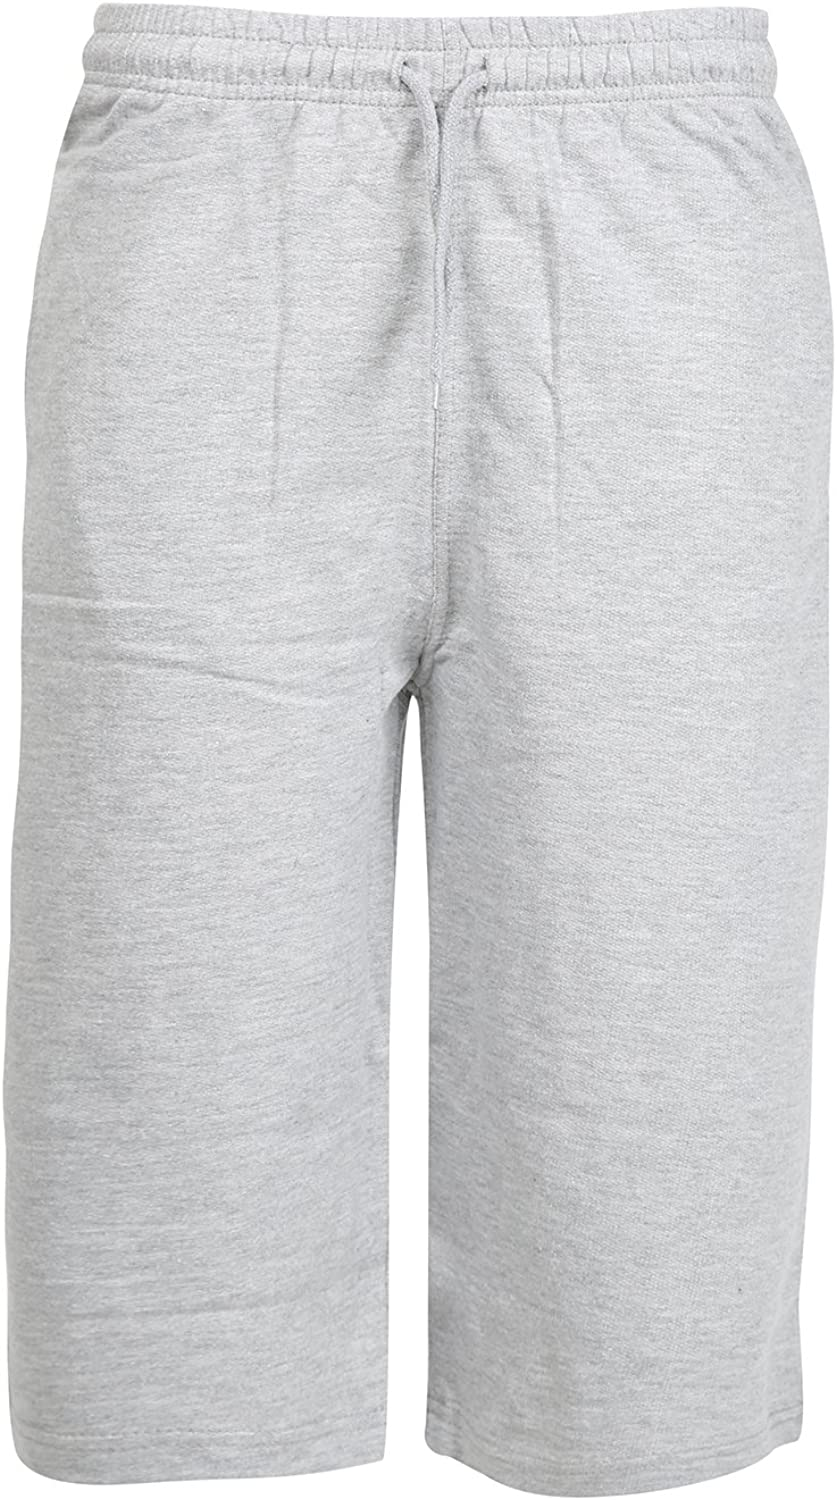 Oasis Fashions Mens Sweatpants Jogging Tracksuit Bottoms Sizes S 6XL 3//4 Also Available